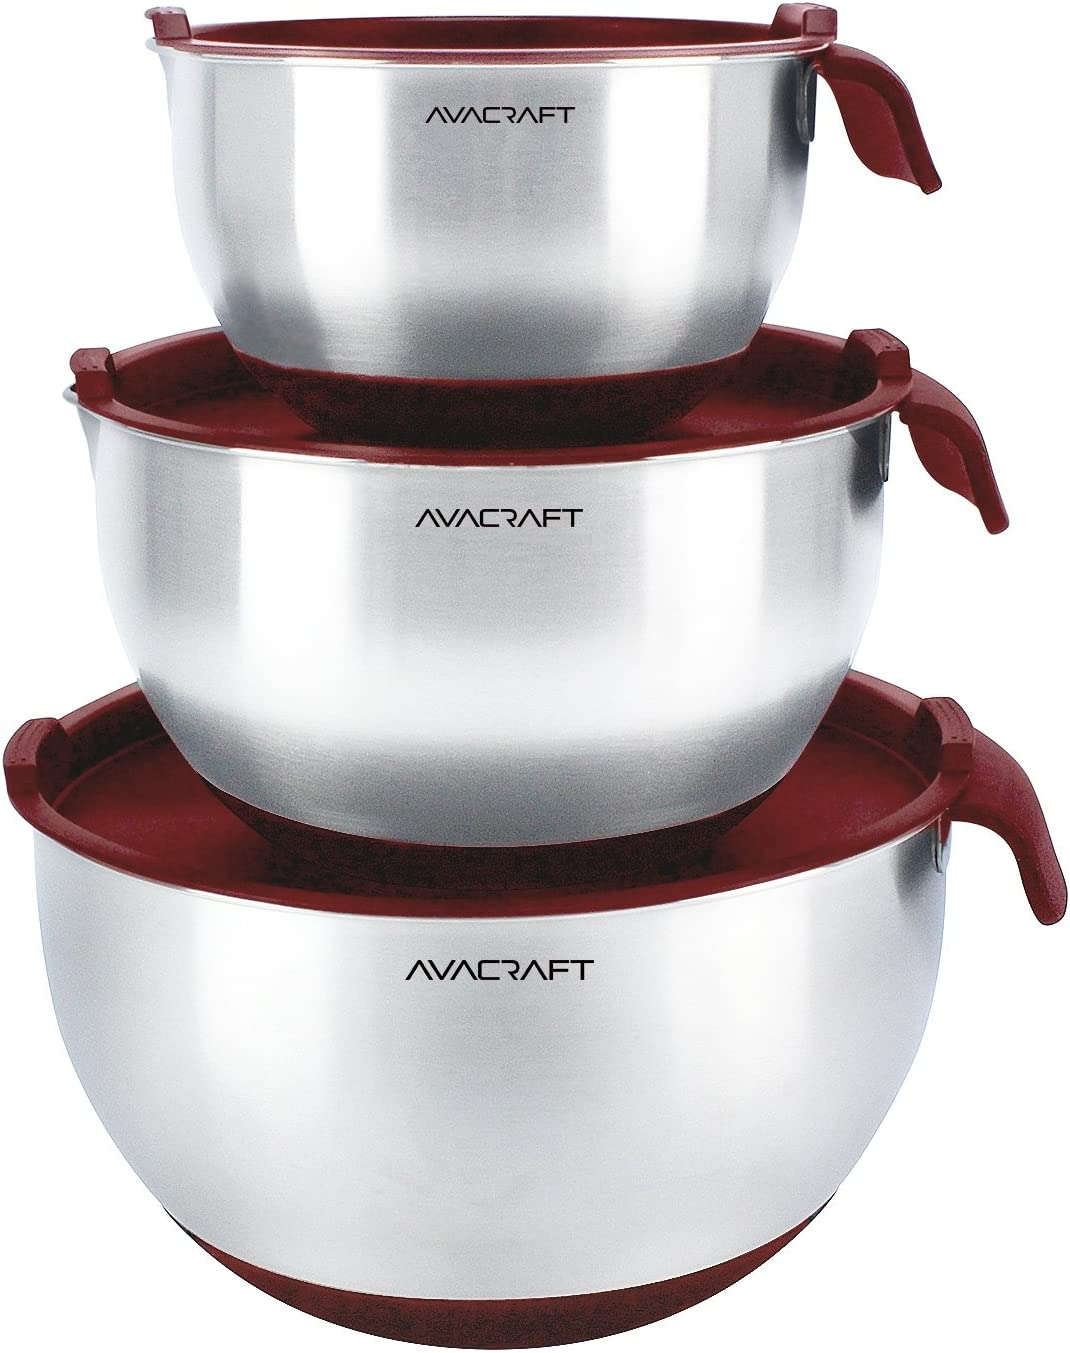 Top Rated Stainless Steel Mixing Bowls